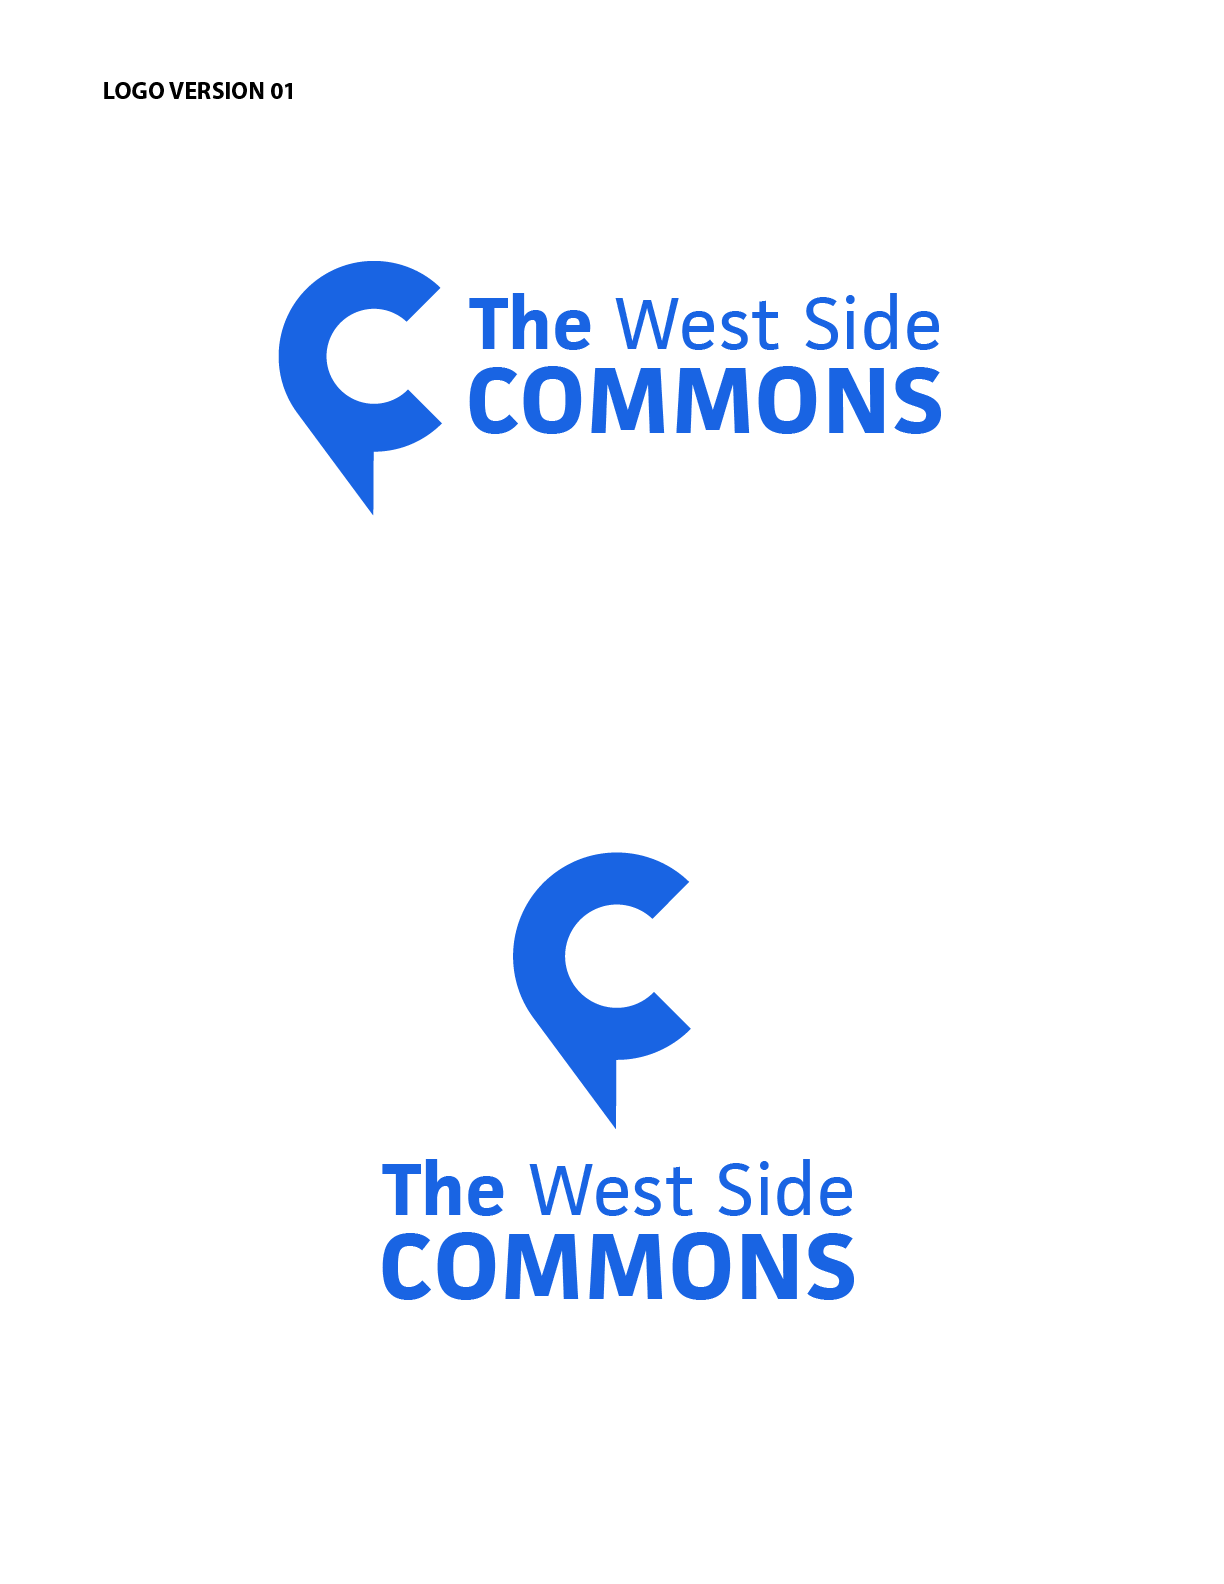 the-commons-master-01-02